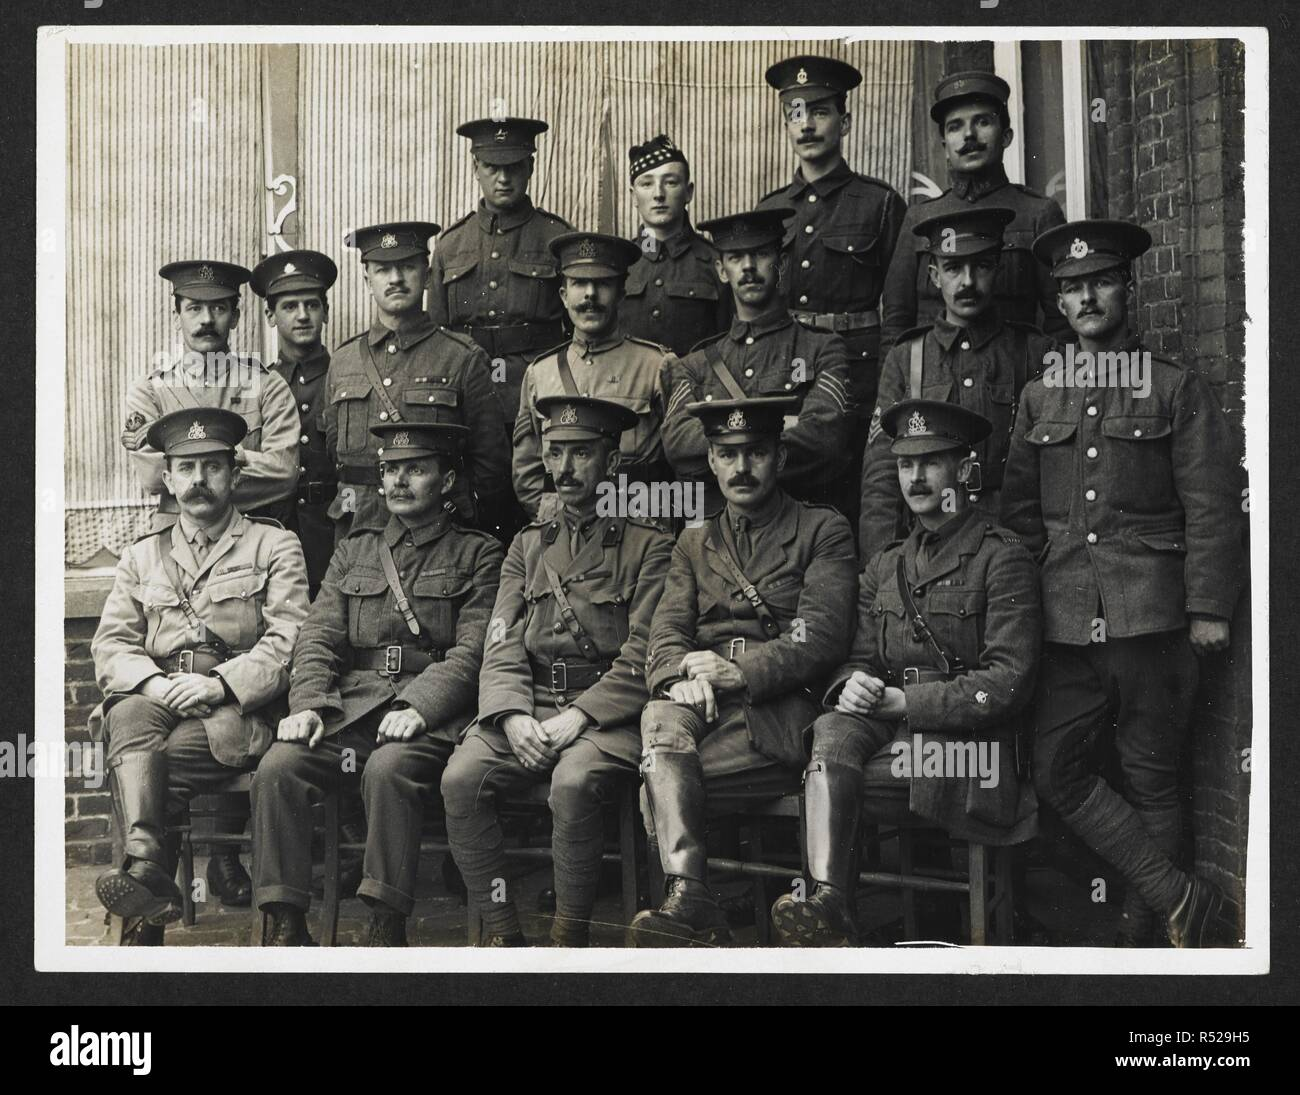 Clerks H Q Indian Corps Merville France 31 July 1915 Record Of The Indian Army In Europe